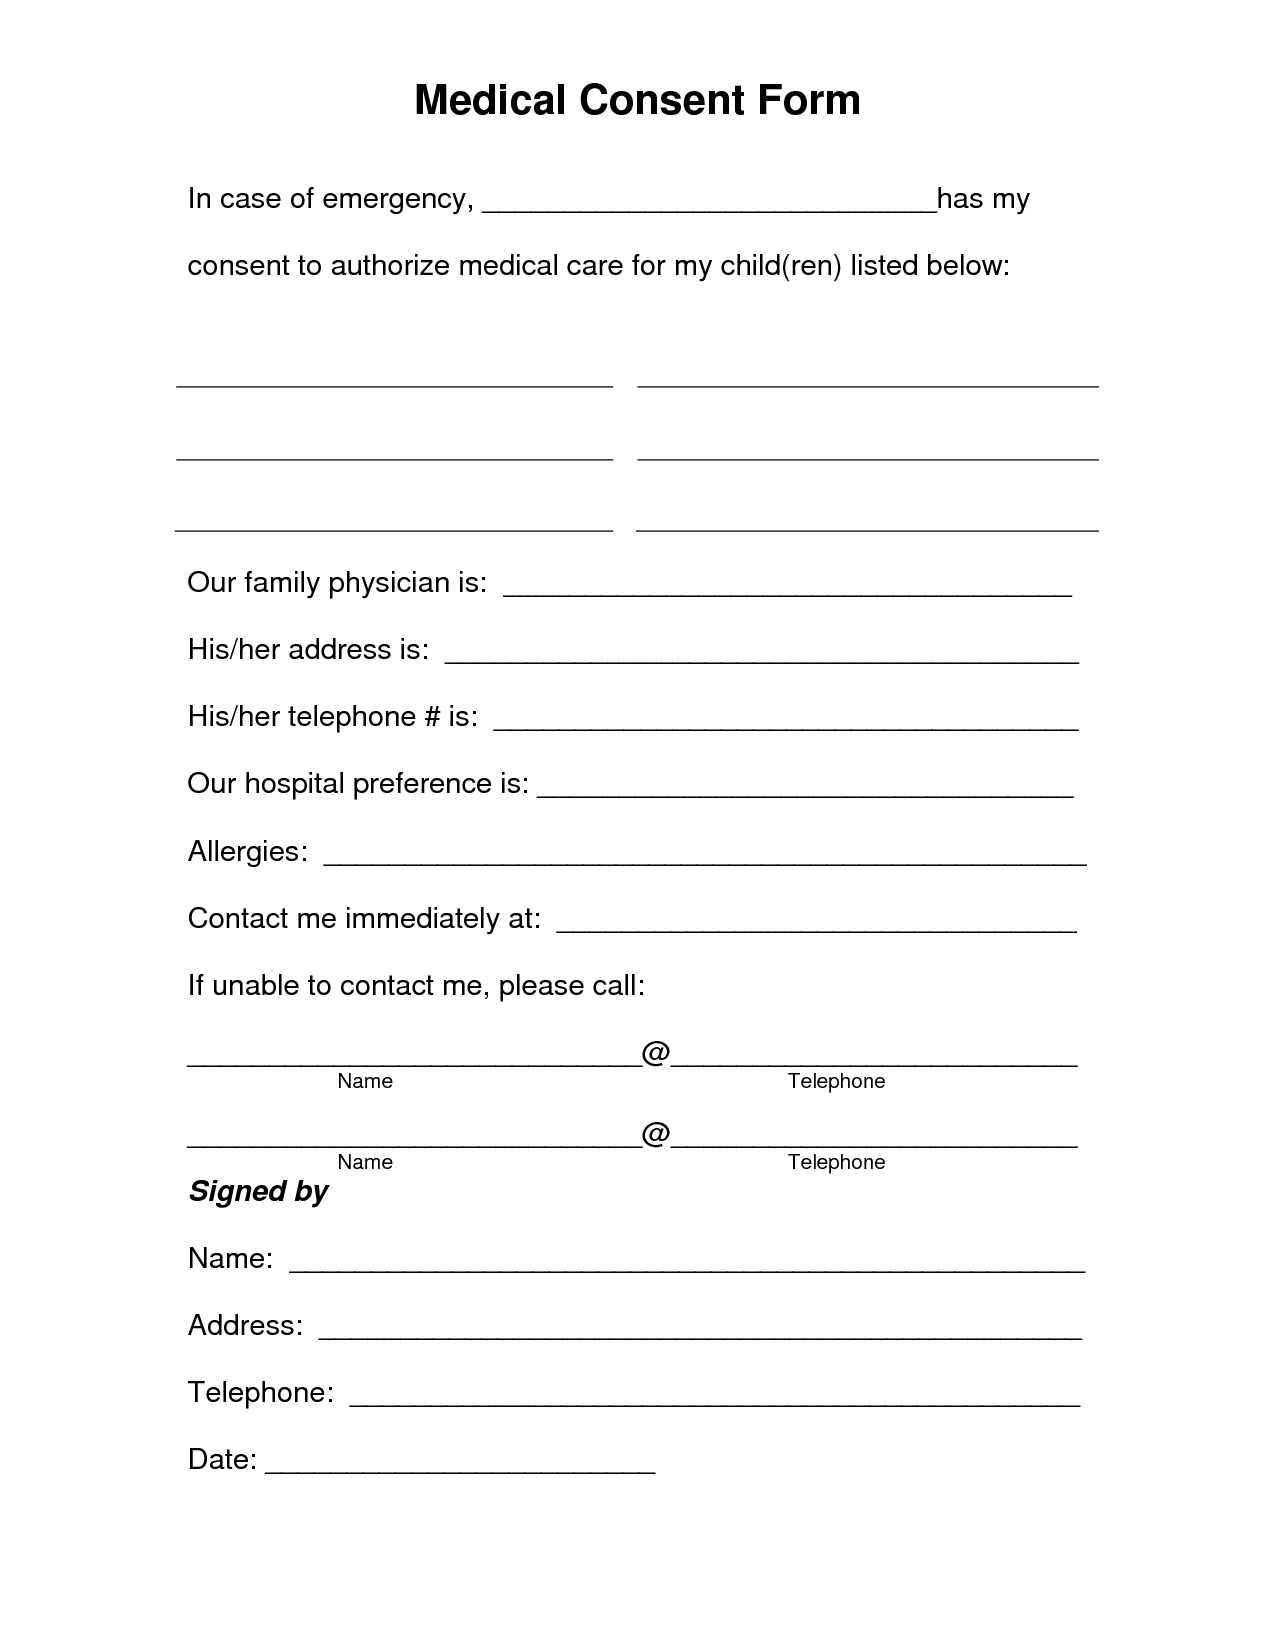 medical consent forms for child Free Printable Medical Consent Form | Free Medical Consent Form ...